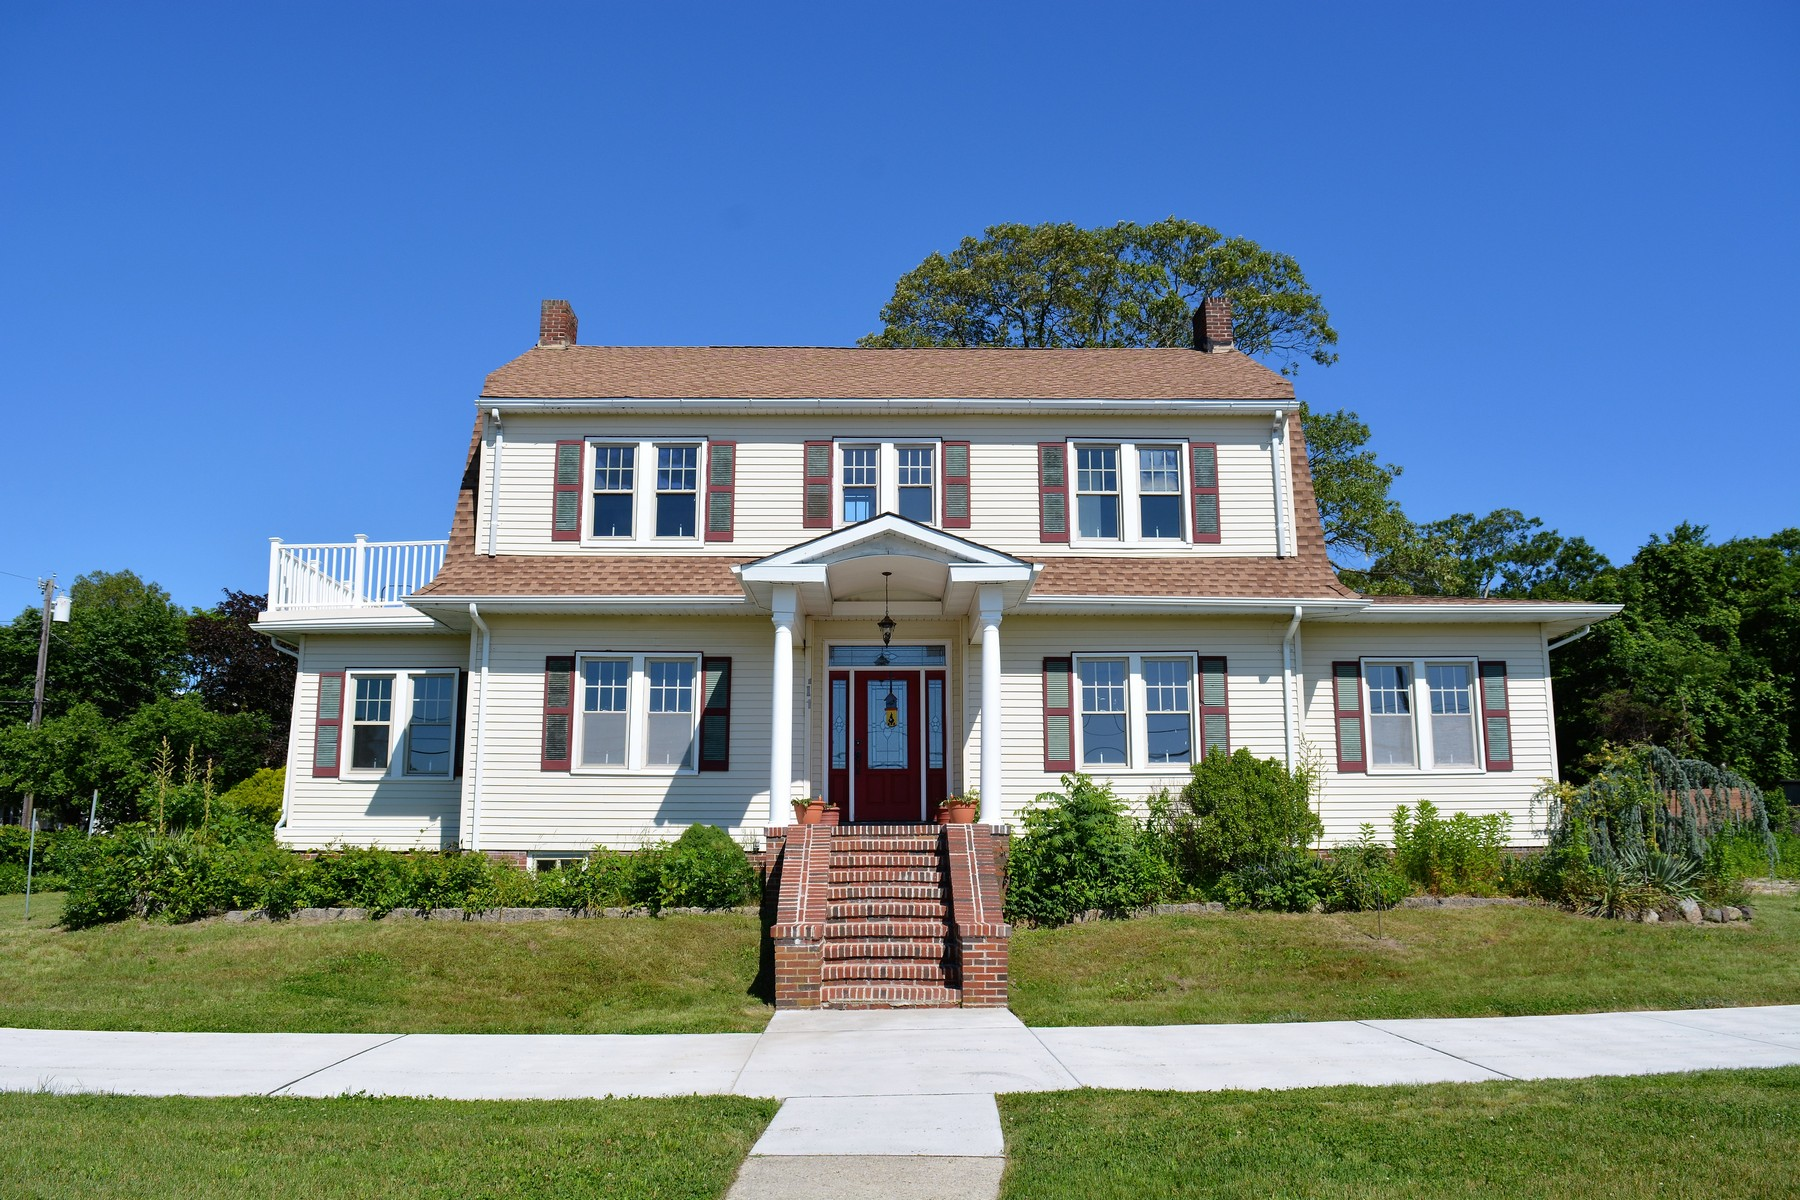 Single Family Home for Sale at Somers Point Single with Meadow Views 419 Bay Avenue Somers Point, New Jersey 08244 United States